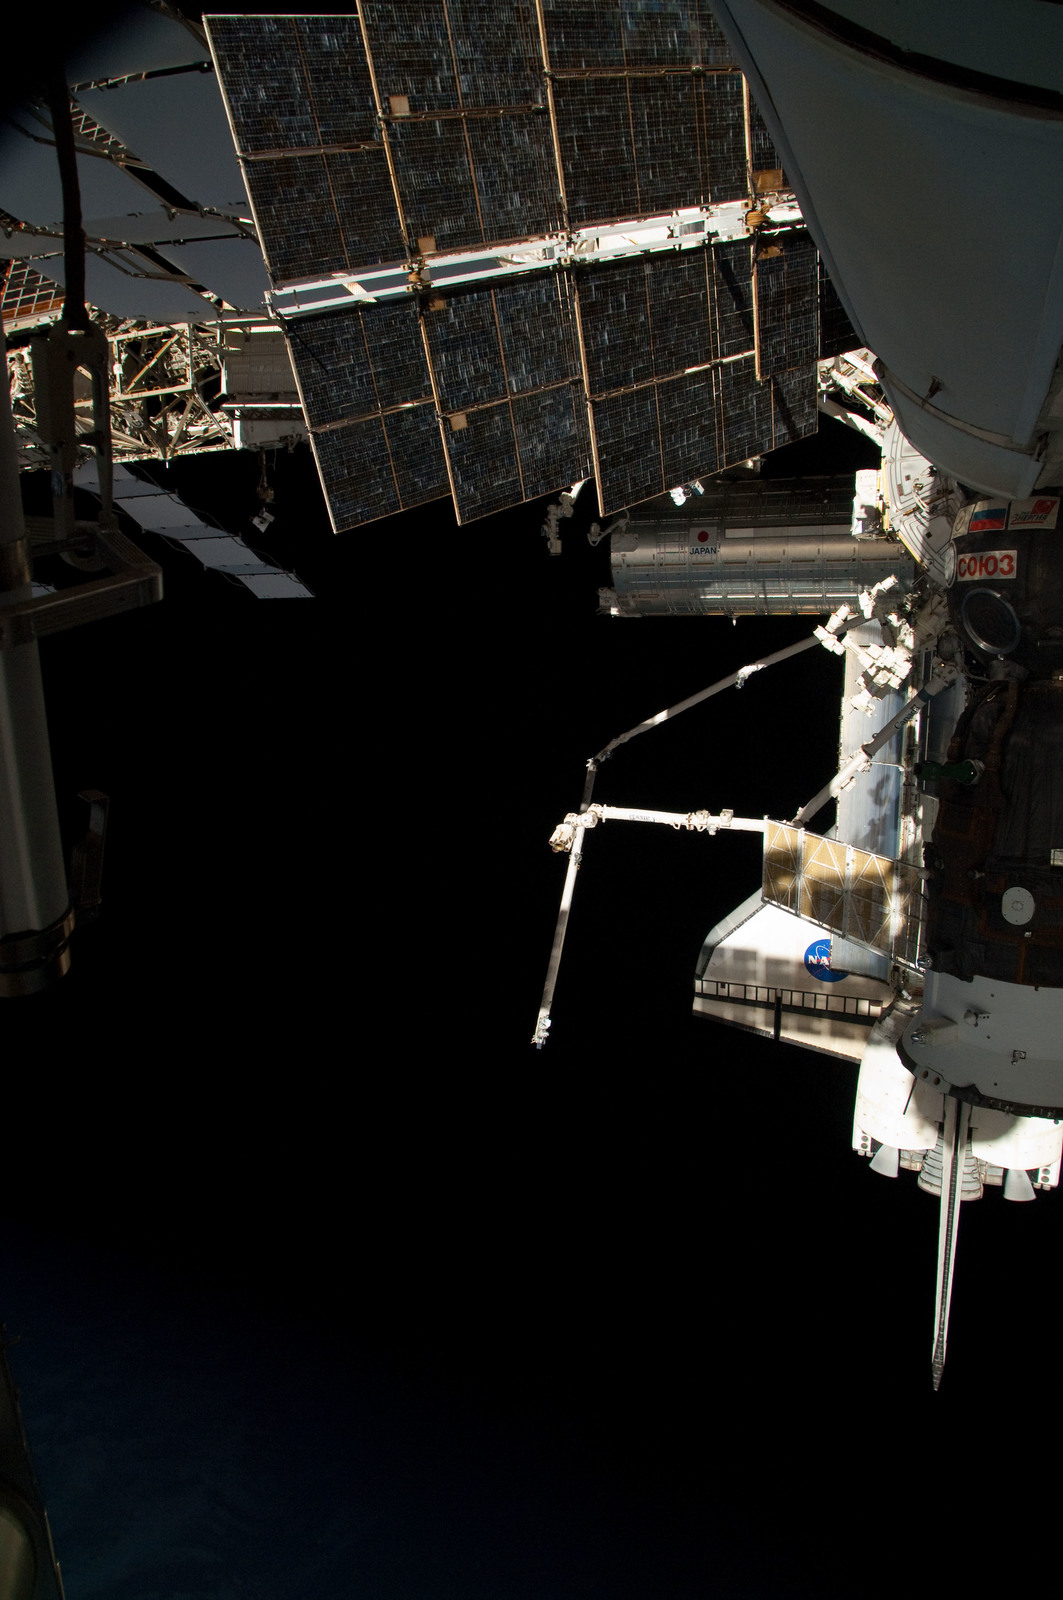 S126E025044 - STS-126 - View of ISS, Docked Soyuz and Endeavour